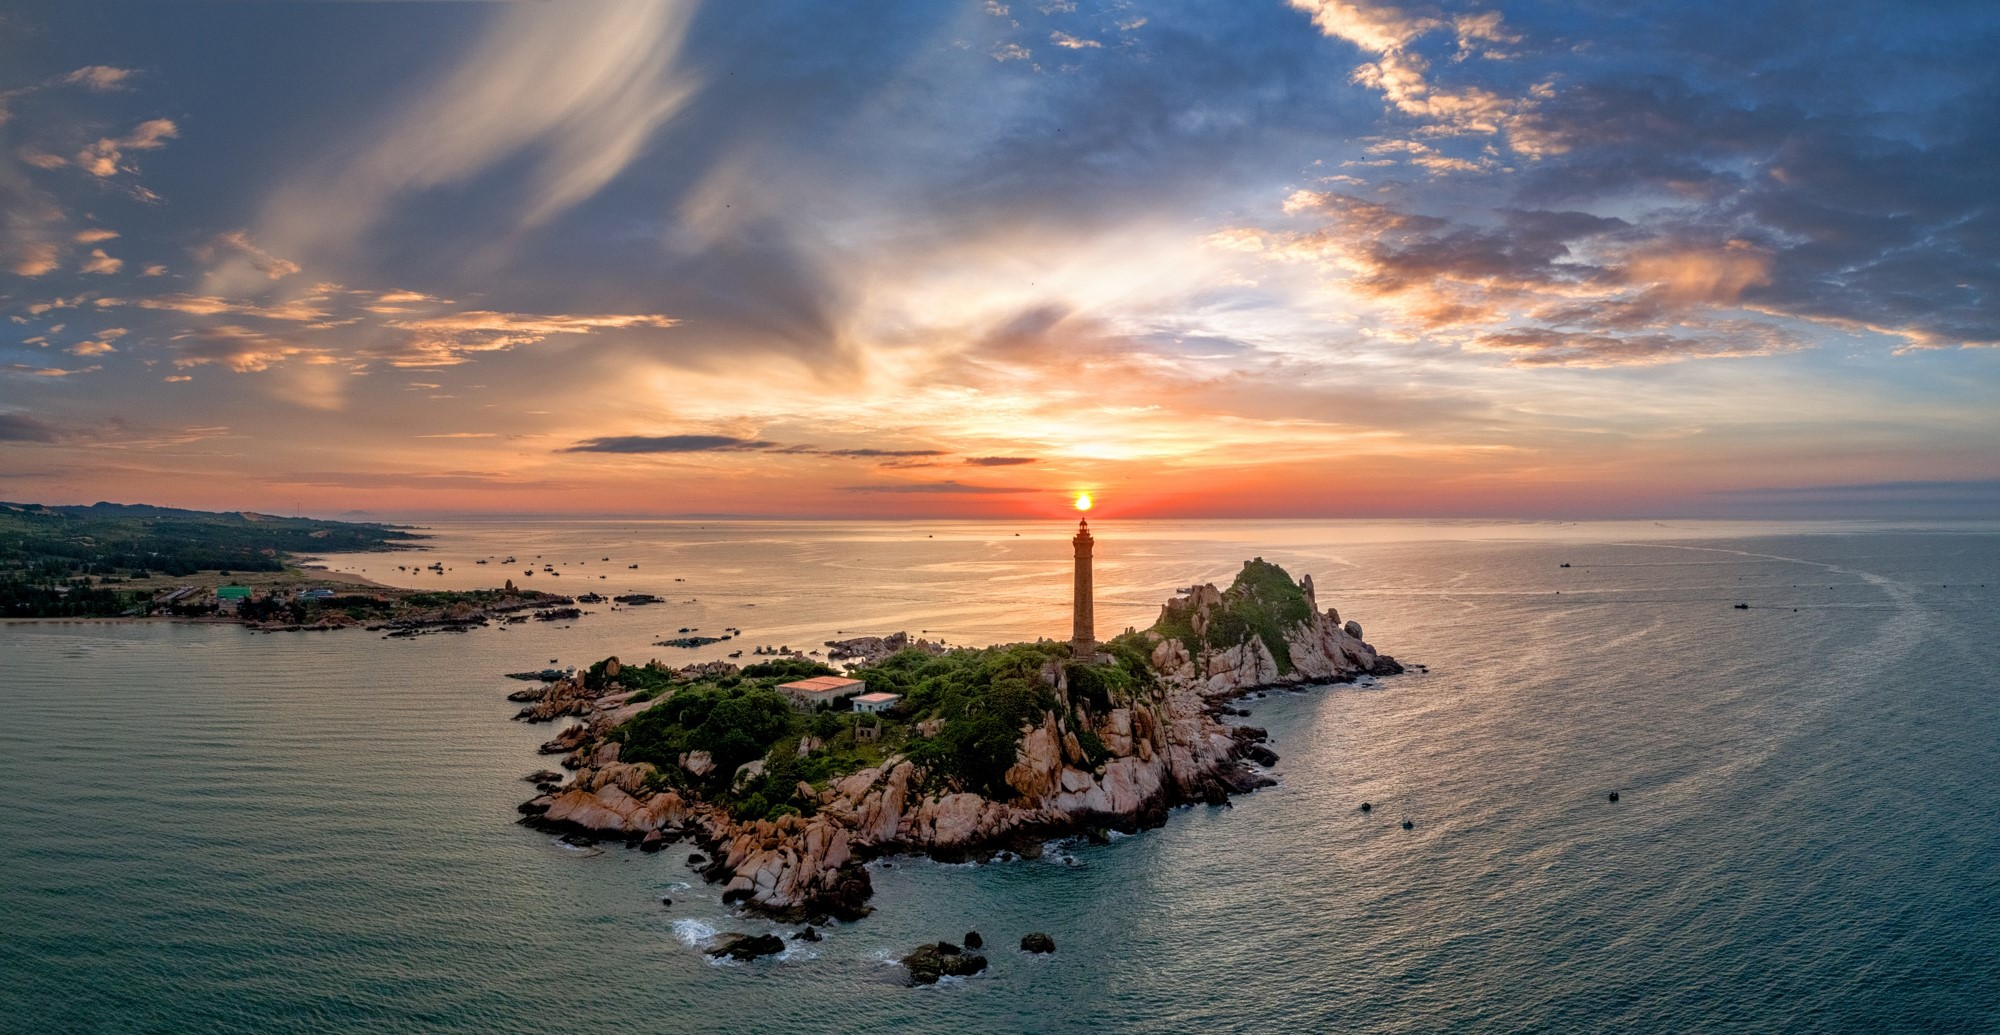 du-an-thanh-long-bay-mui-ke-ga